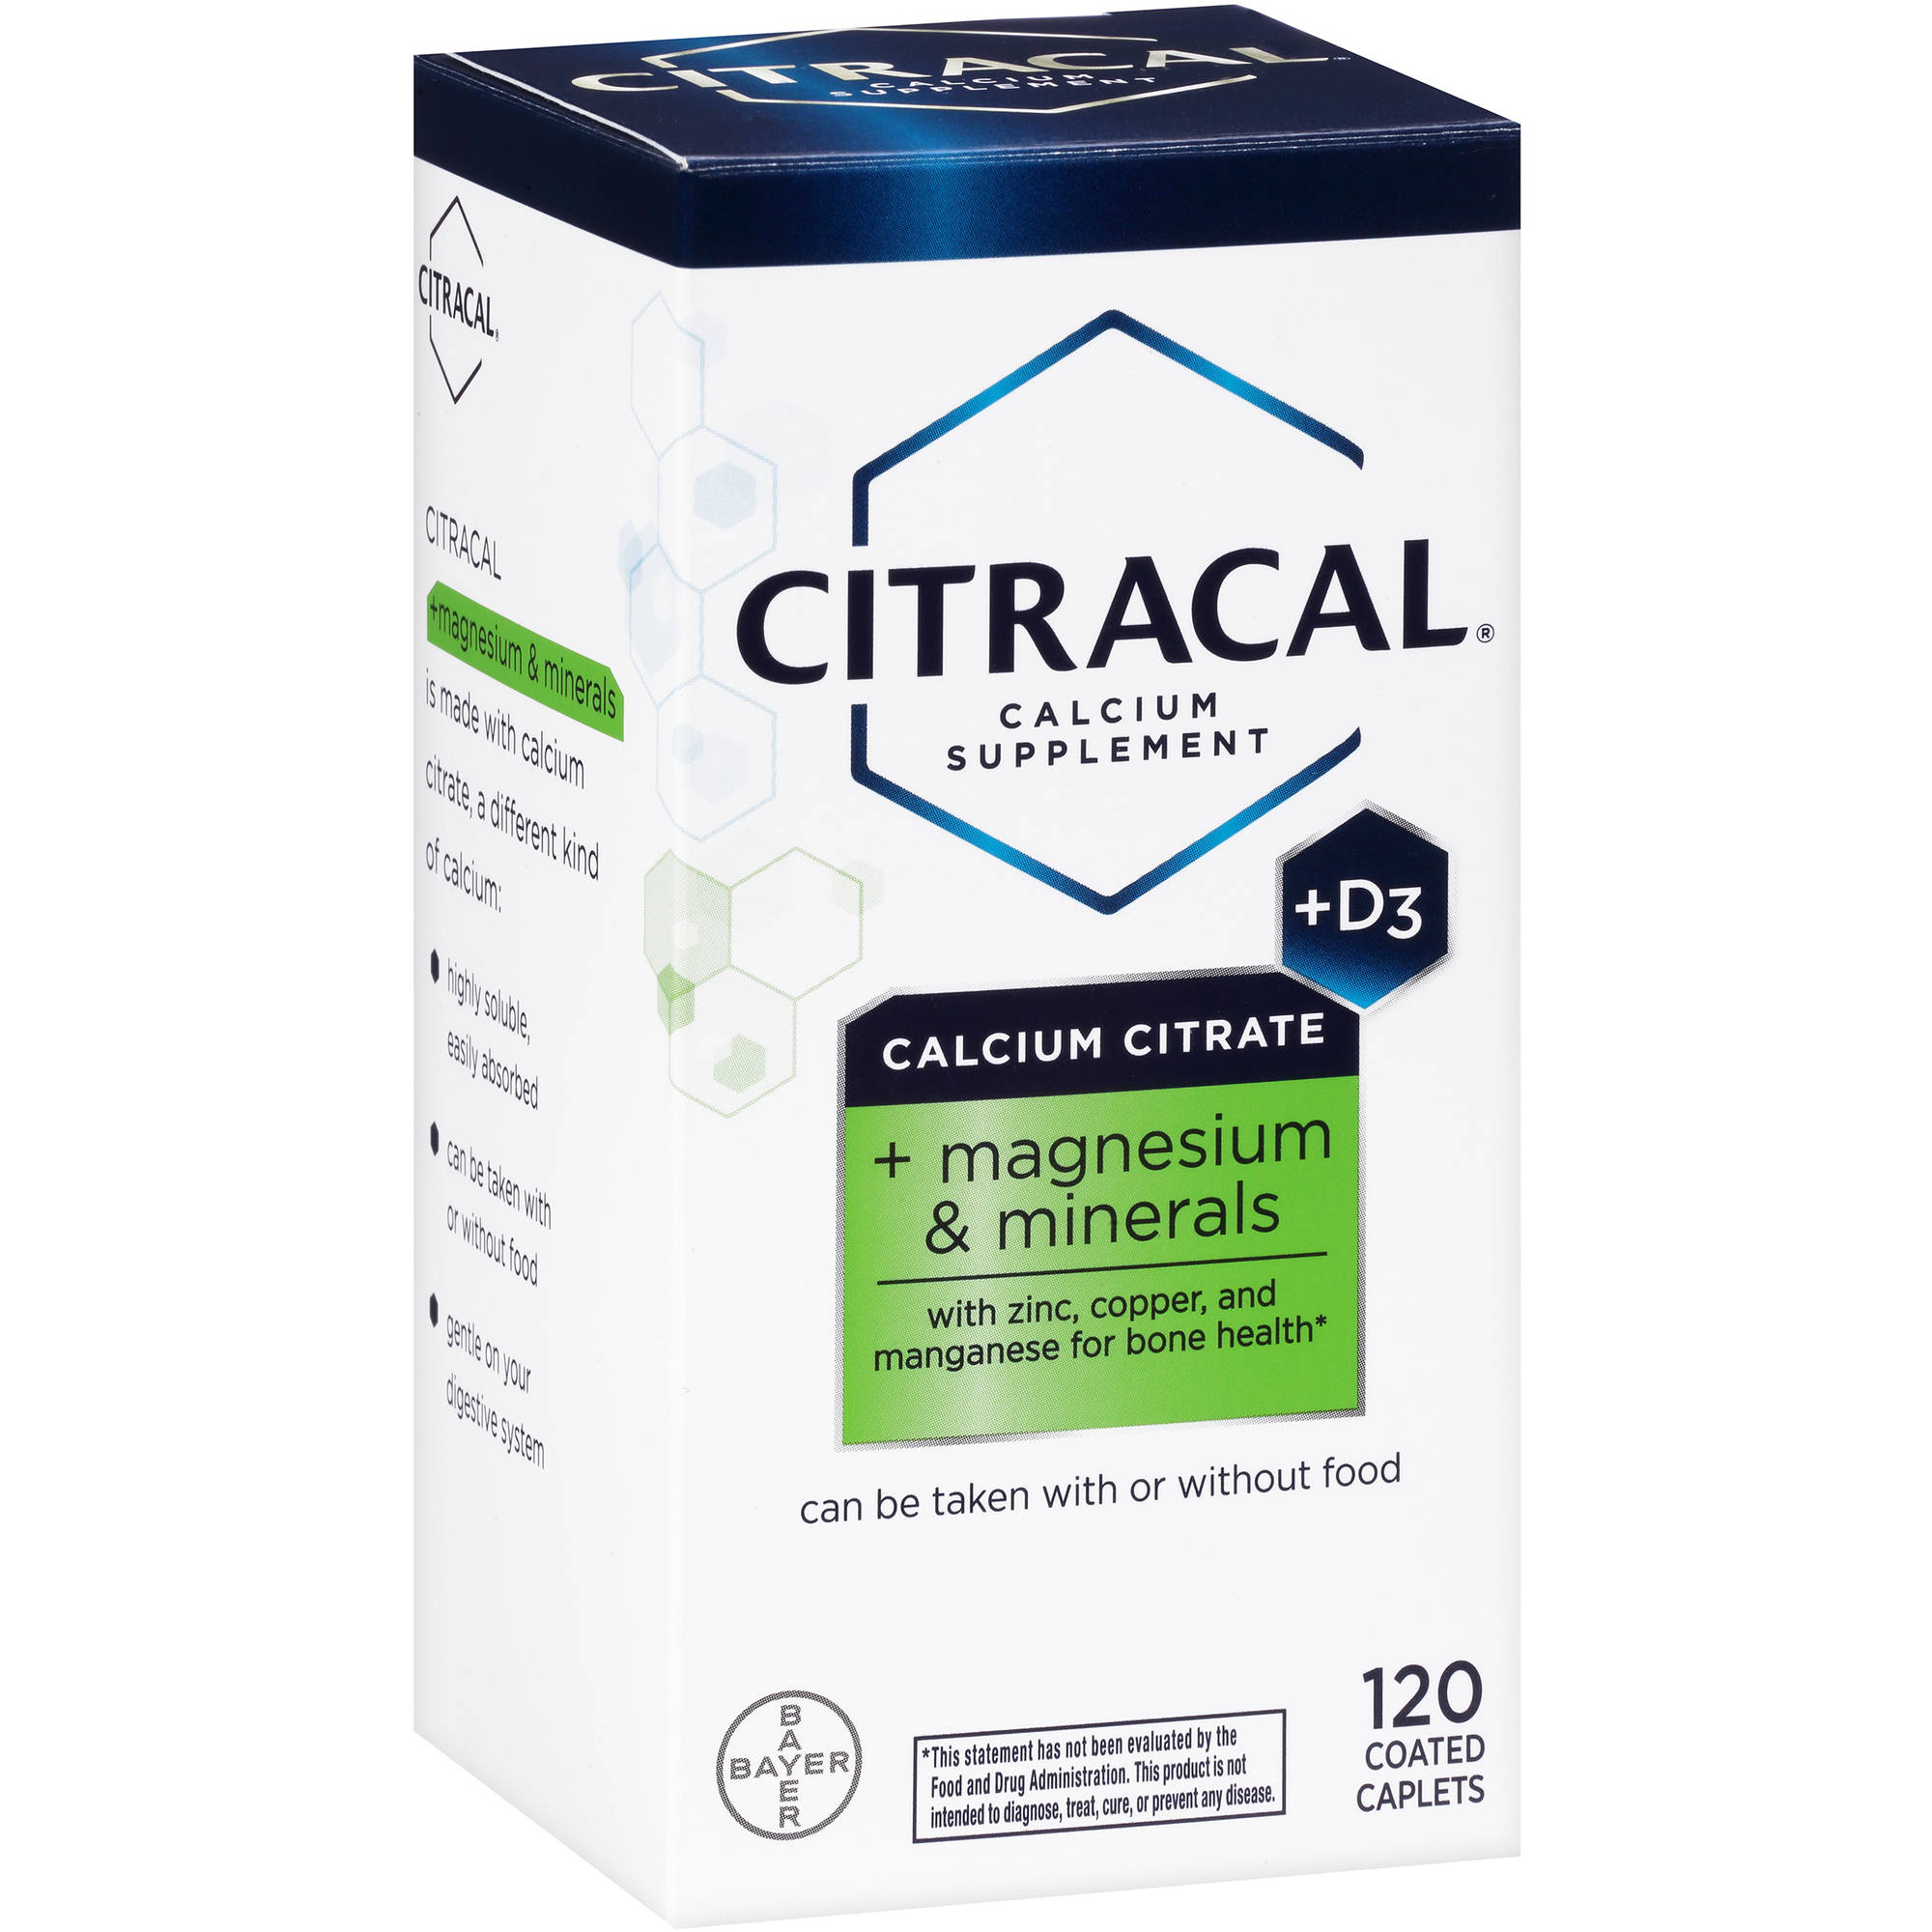 Citracal Calcium Citrate   D3   Magnesium & Minerals Calcium Supplement, 120 count